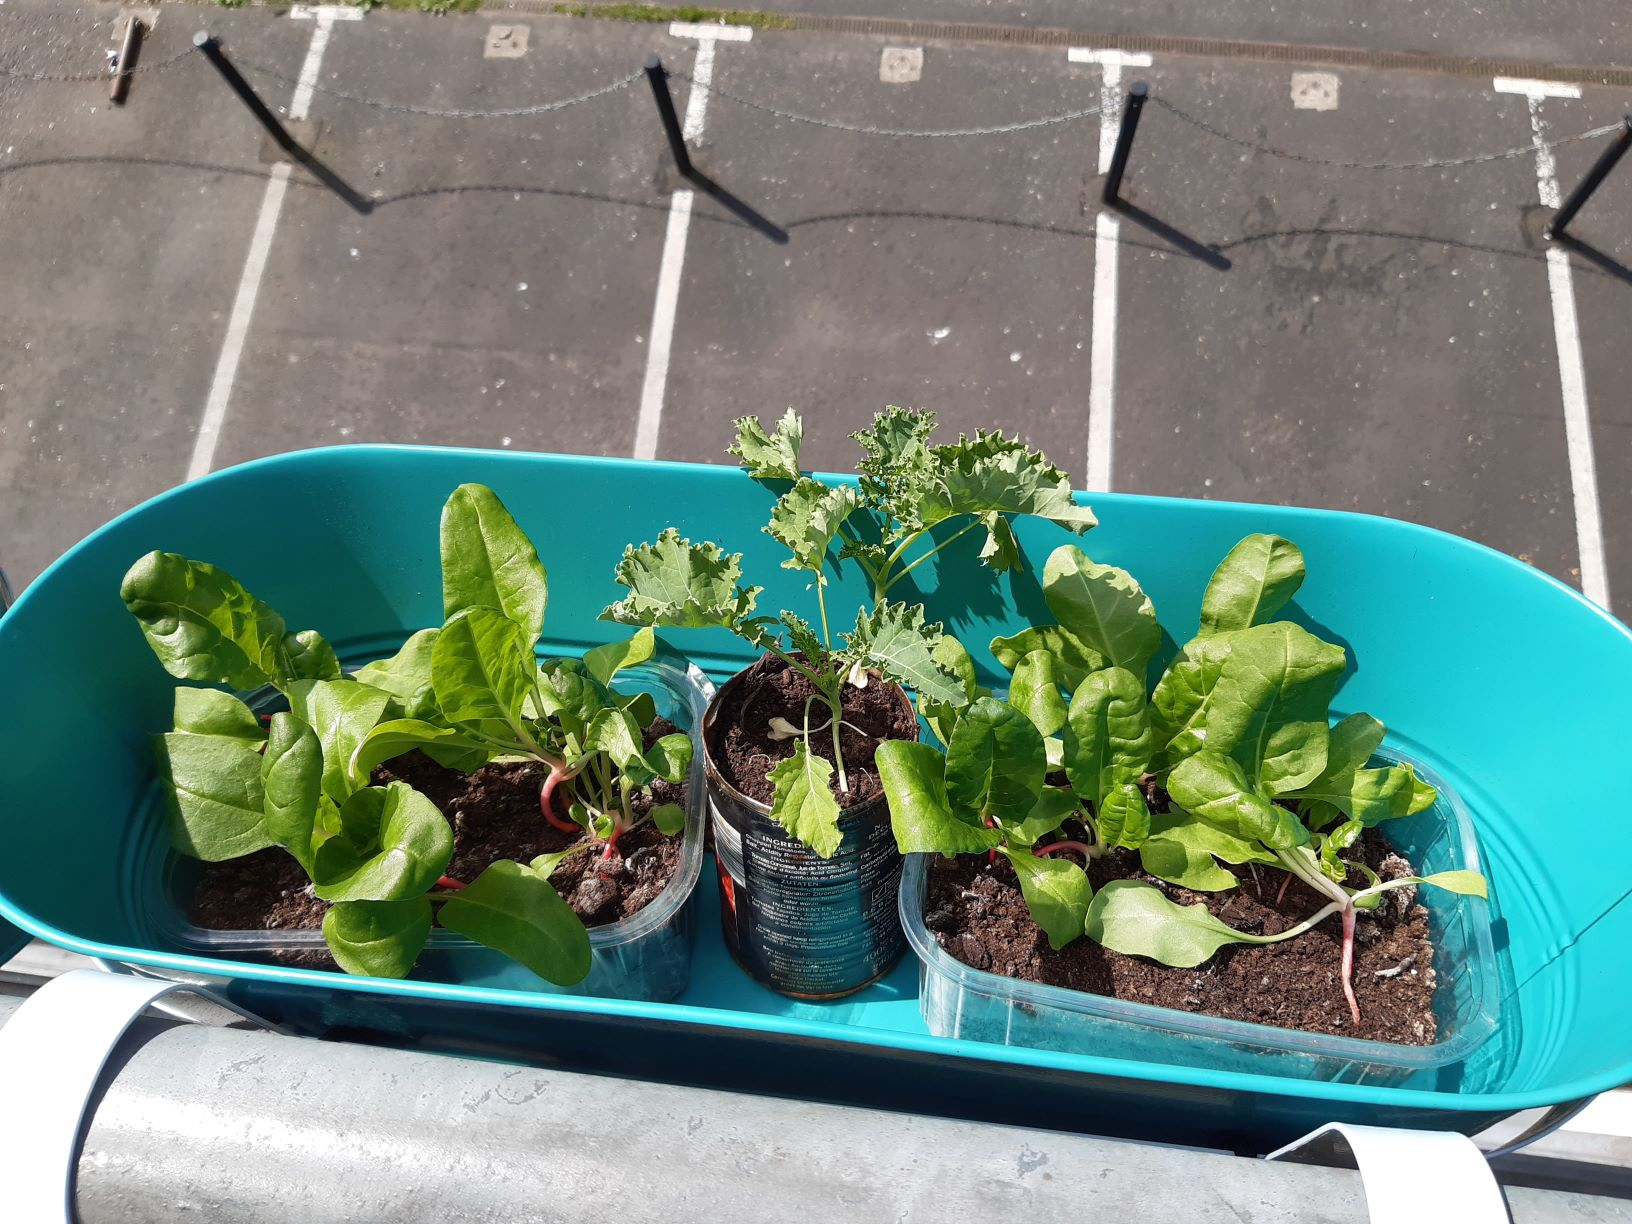 The image shows three cans and a plastic container inside a turquoise window box. The containers contain soil and some chard and kale plants. The parking area below is visible in the background